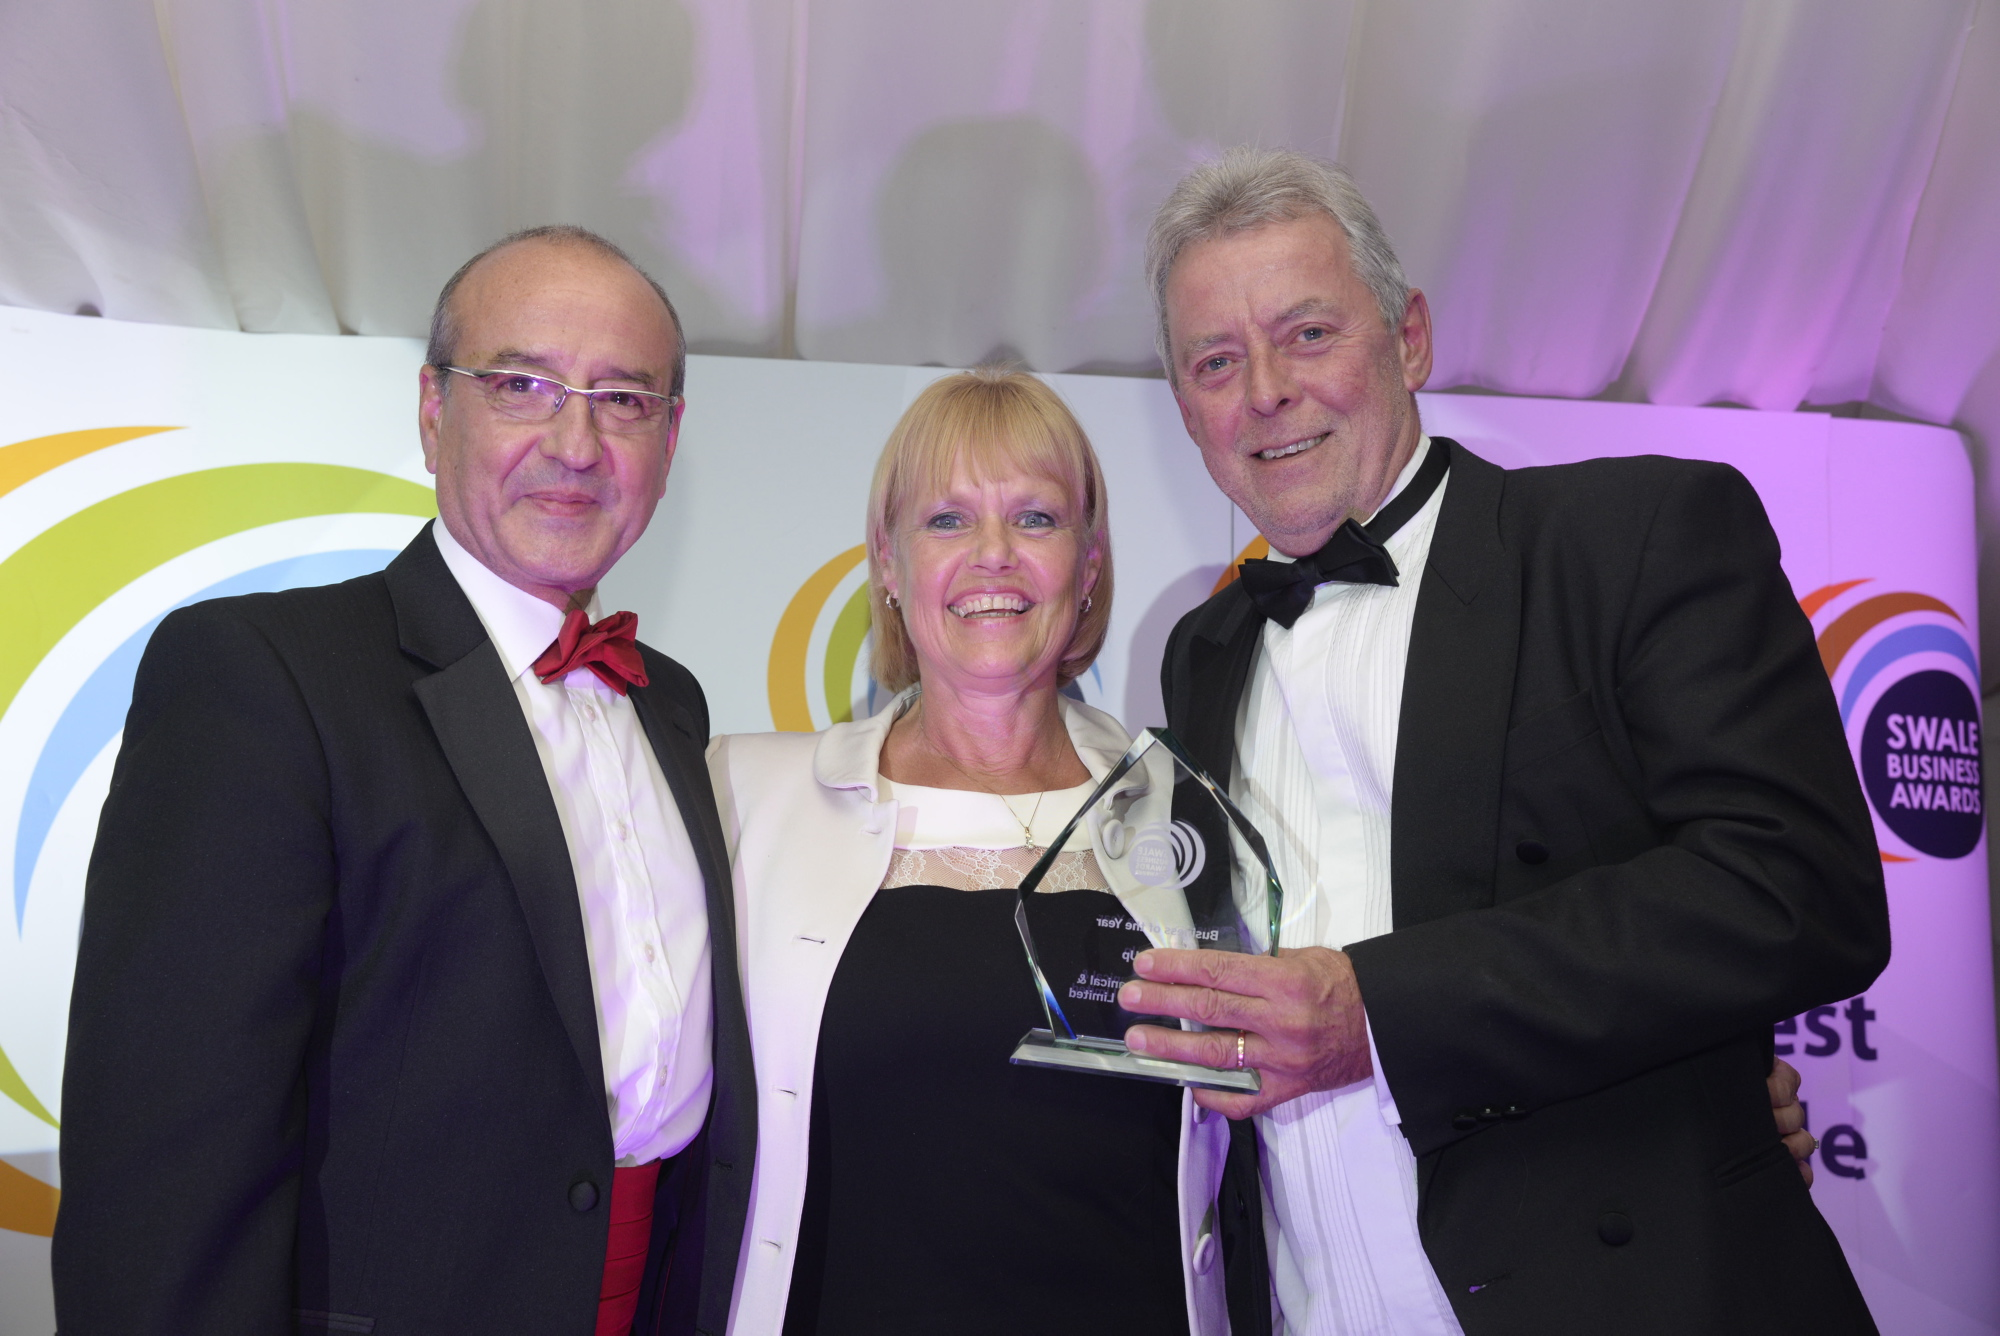 Business of the Year Runner-Up